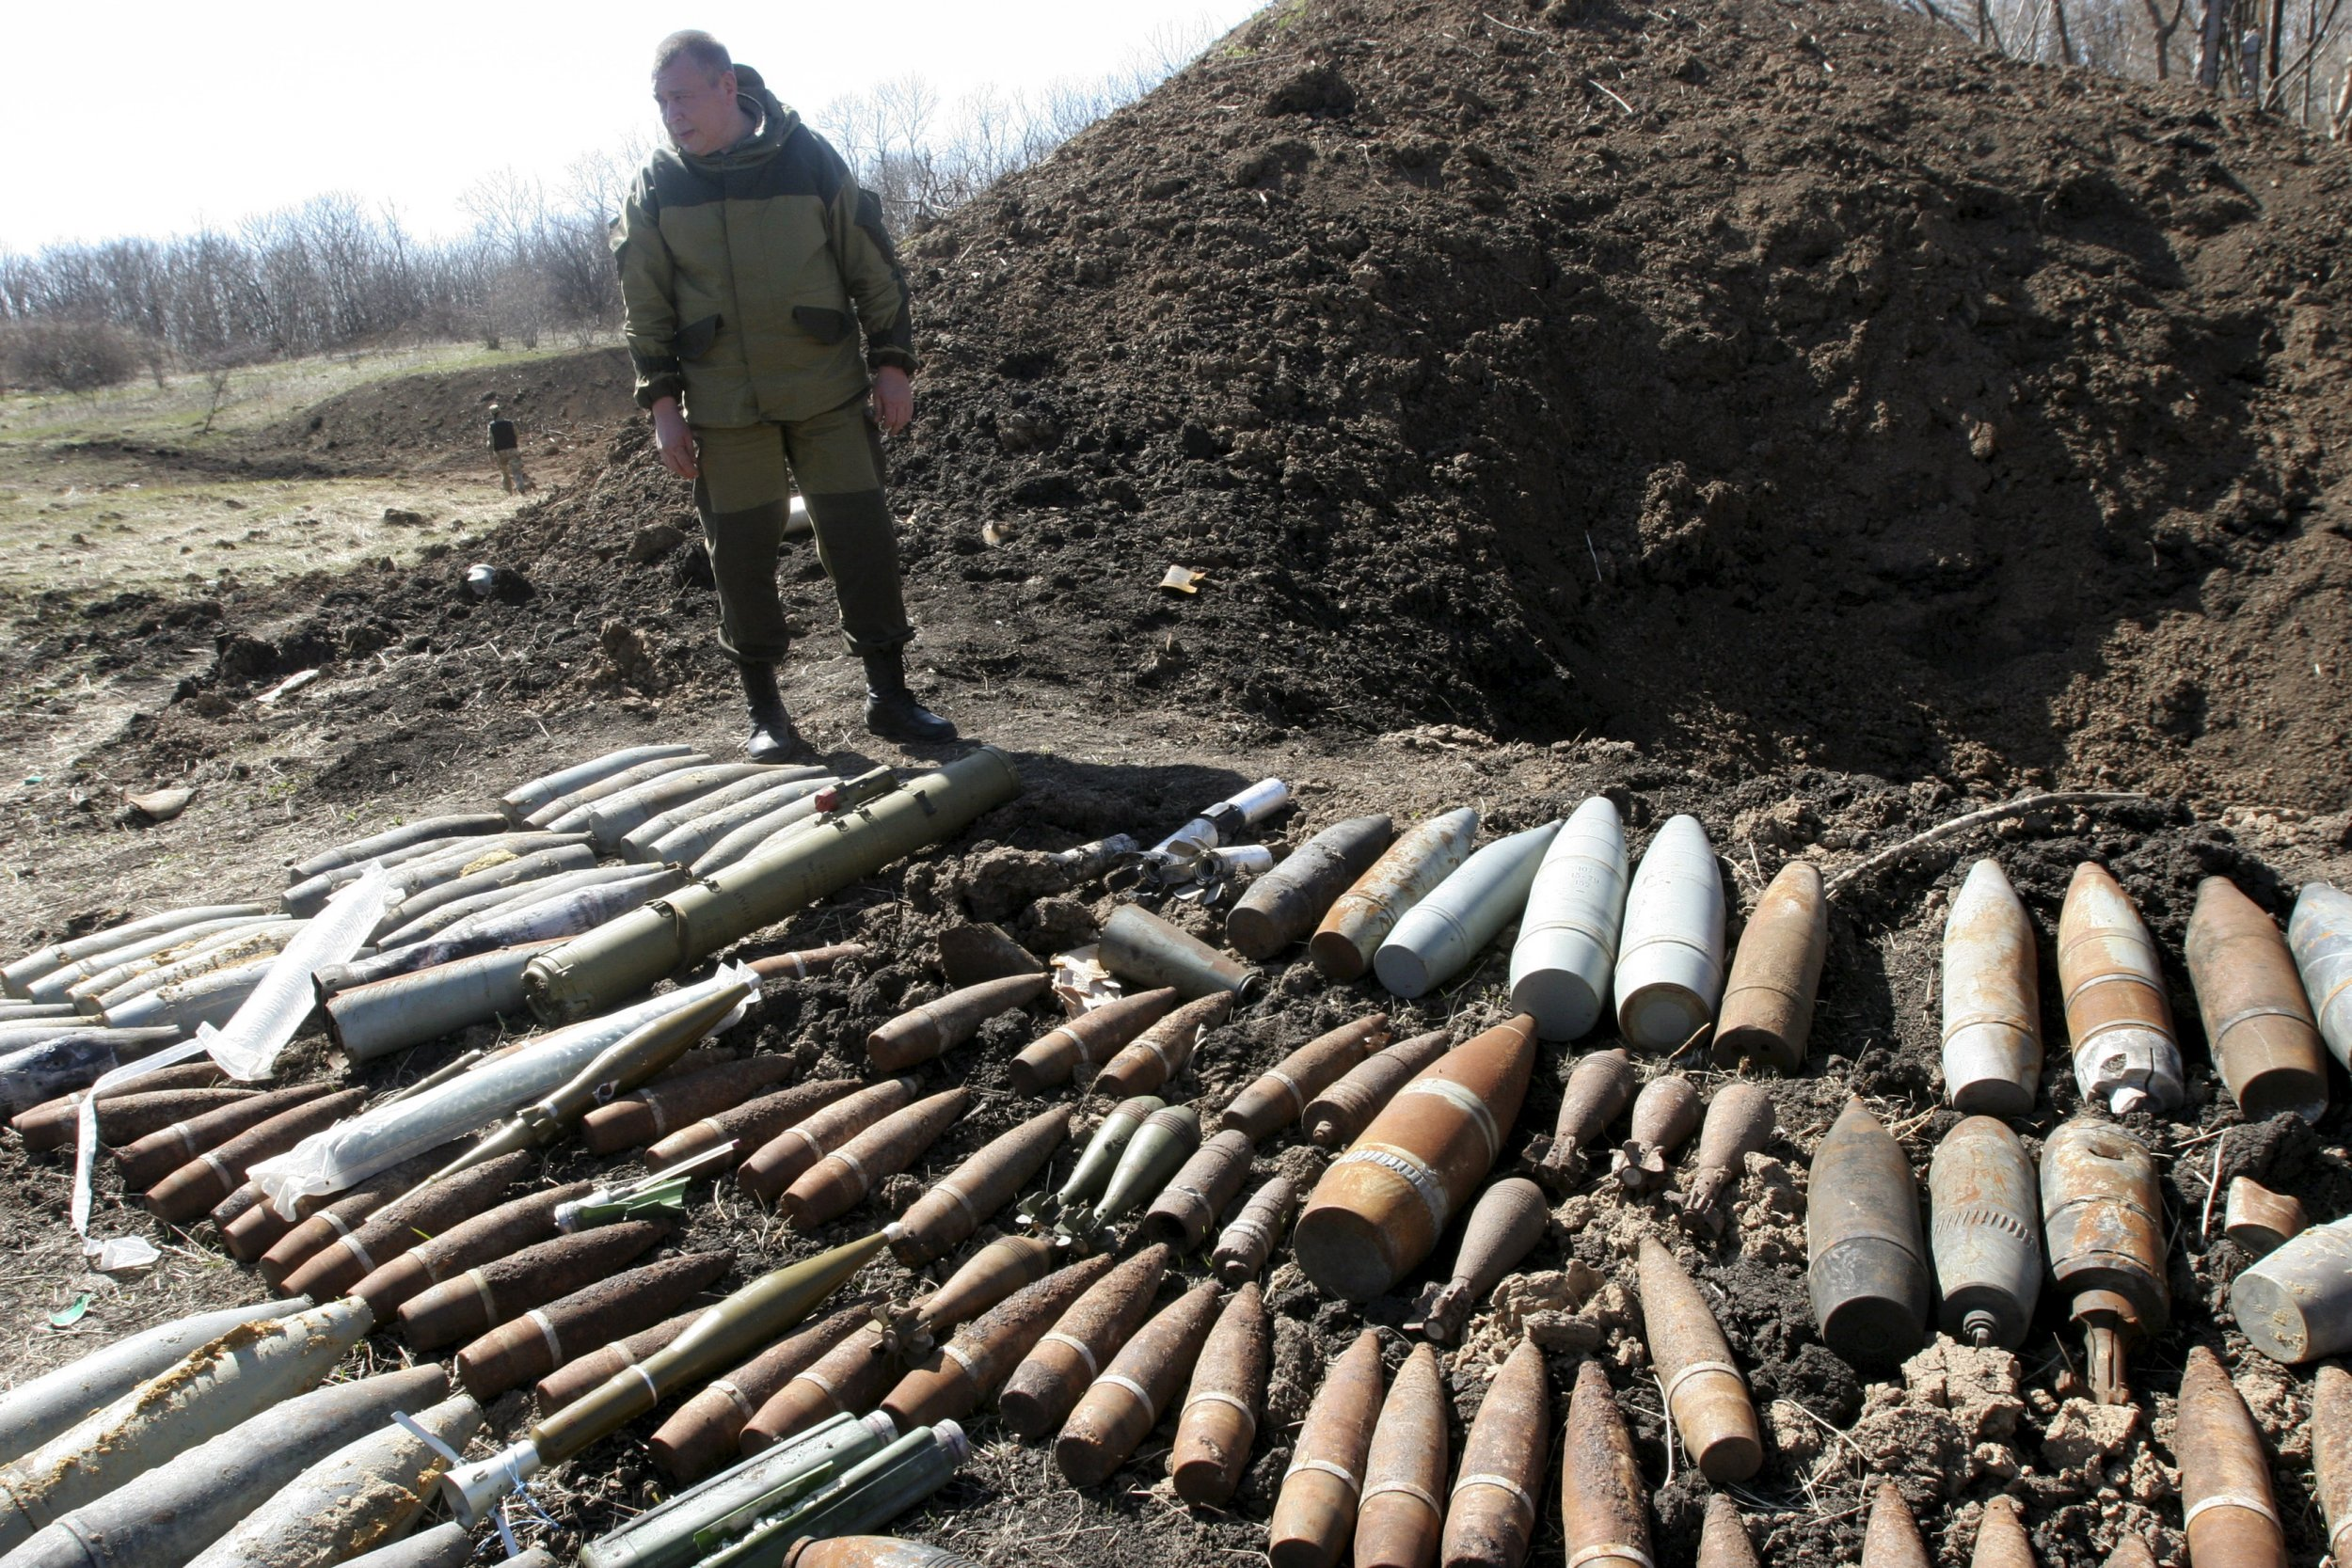 Donetsk unexploded shells